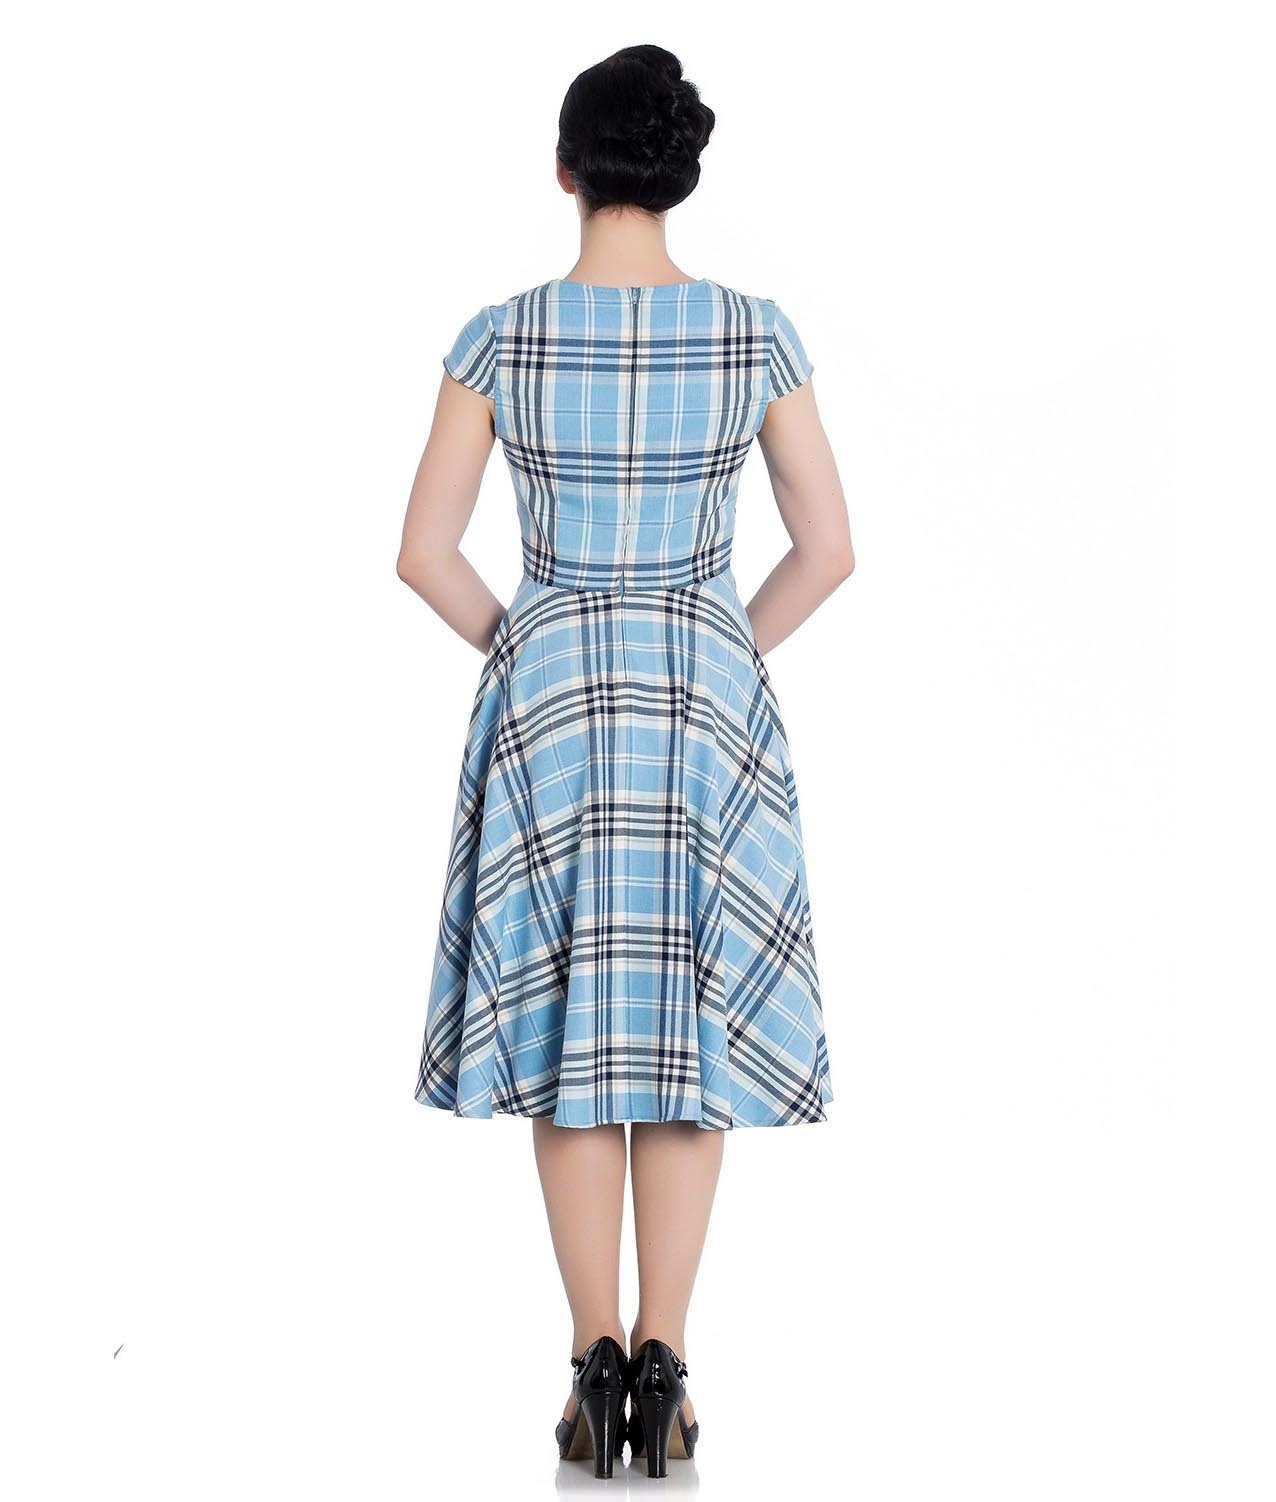 Hell-Bunny-Pinup-50s-Dress-ABERDEEN-Hogmony-Sky-Blue-amp-White-Tartan-All-Sizes thumbnail 5